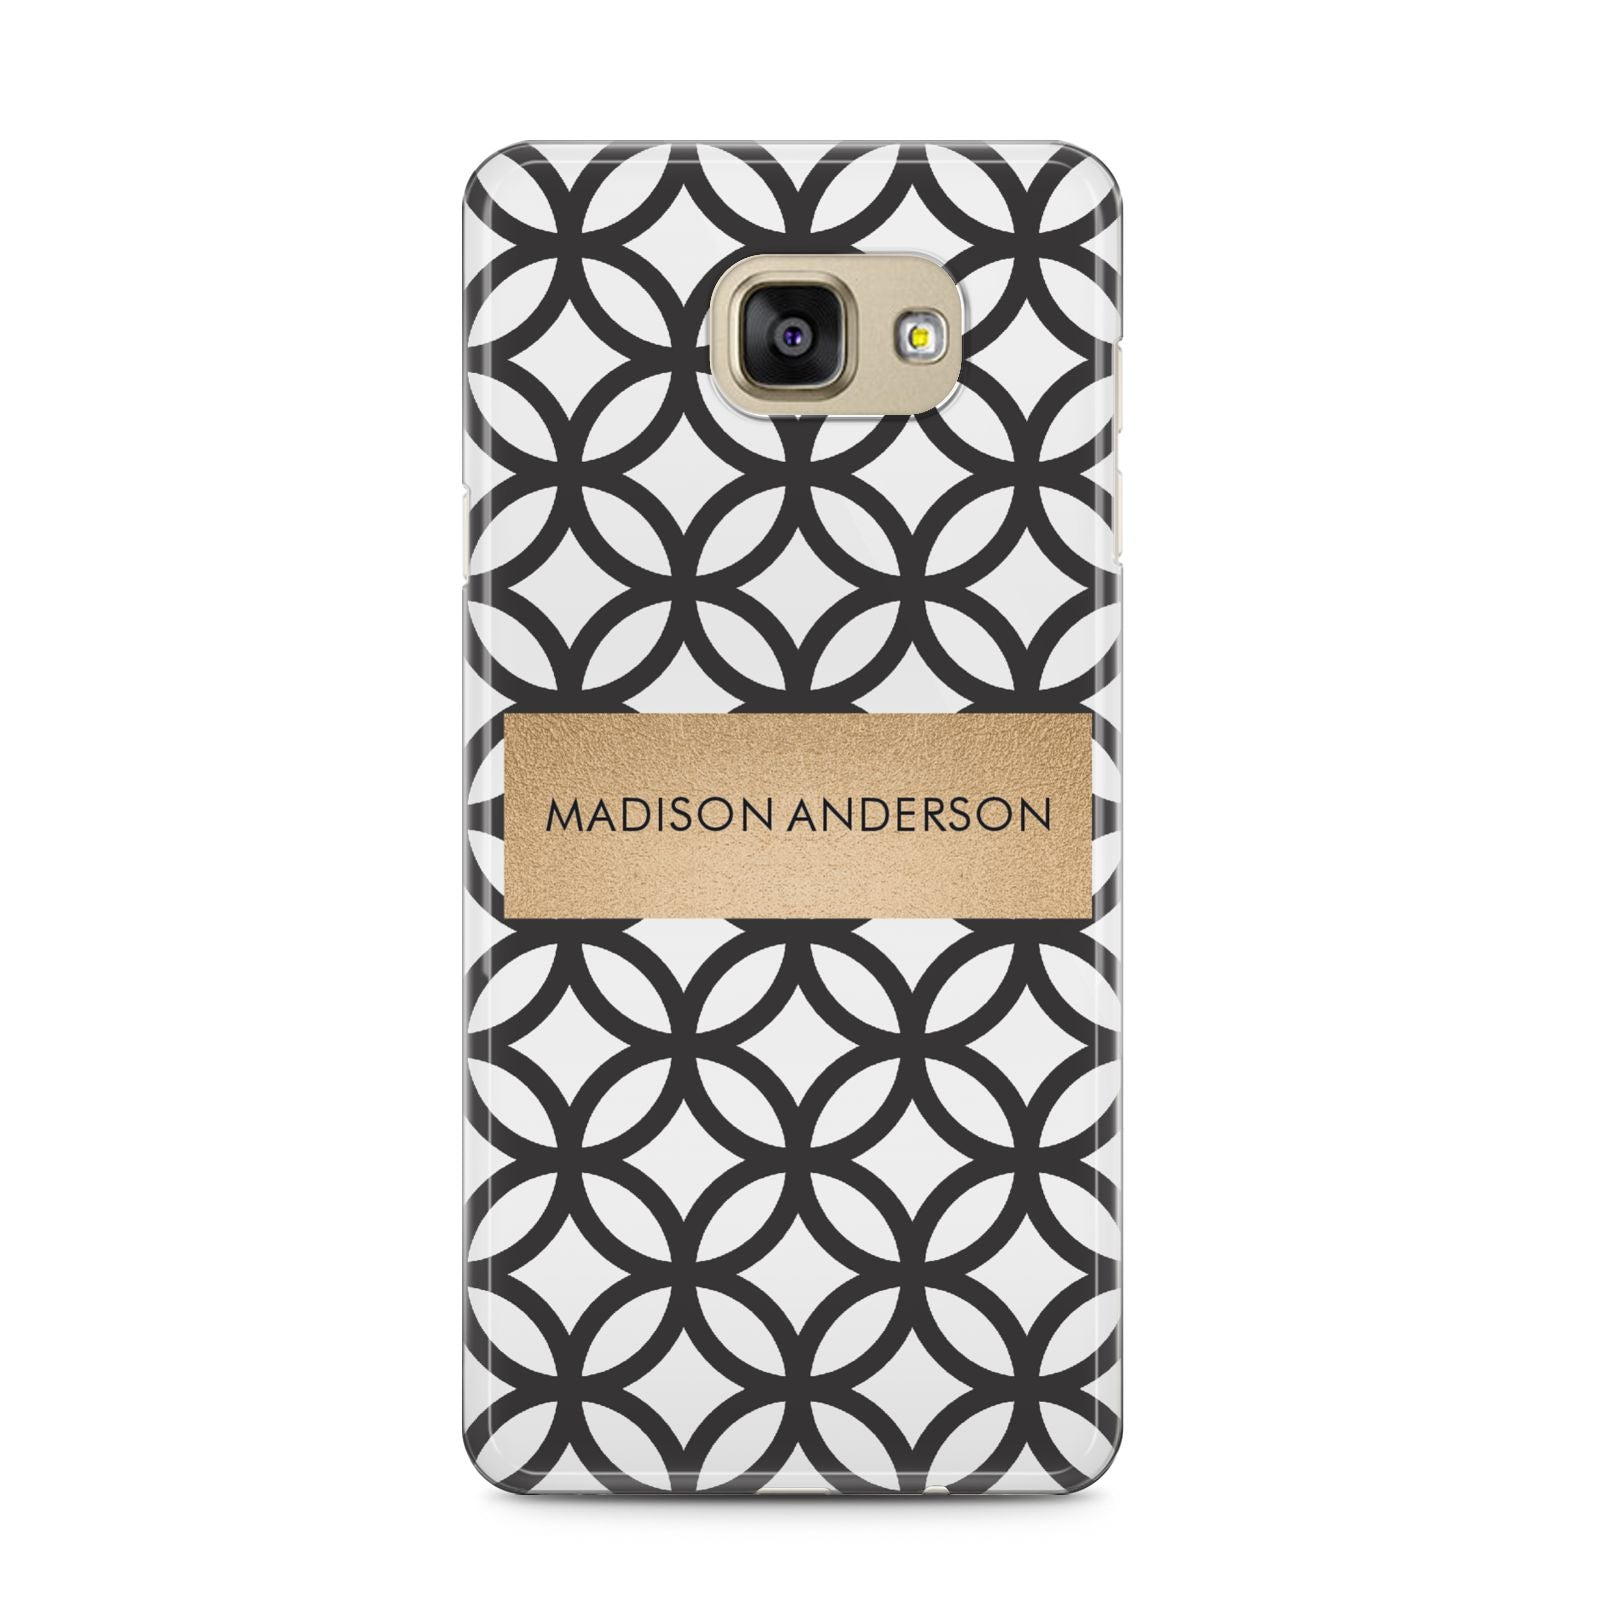 Personalised Geometric Name Or Initials Custom Samsung Galaxy A5 2016 Case on gold phone